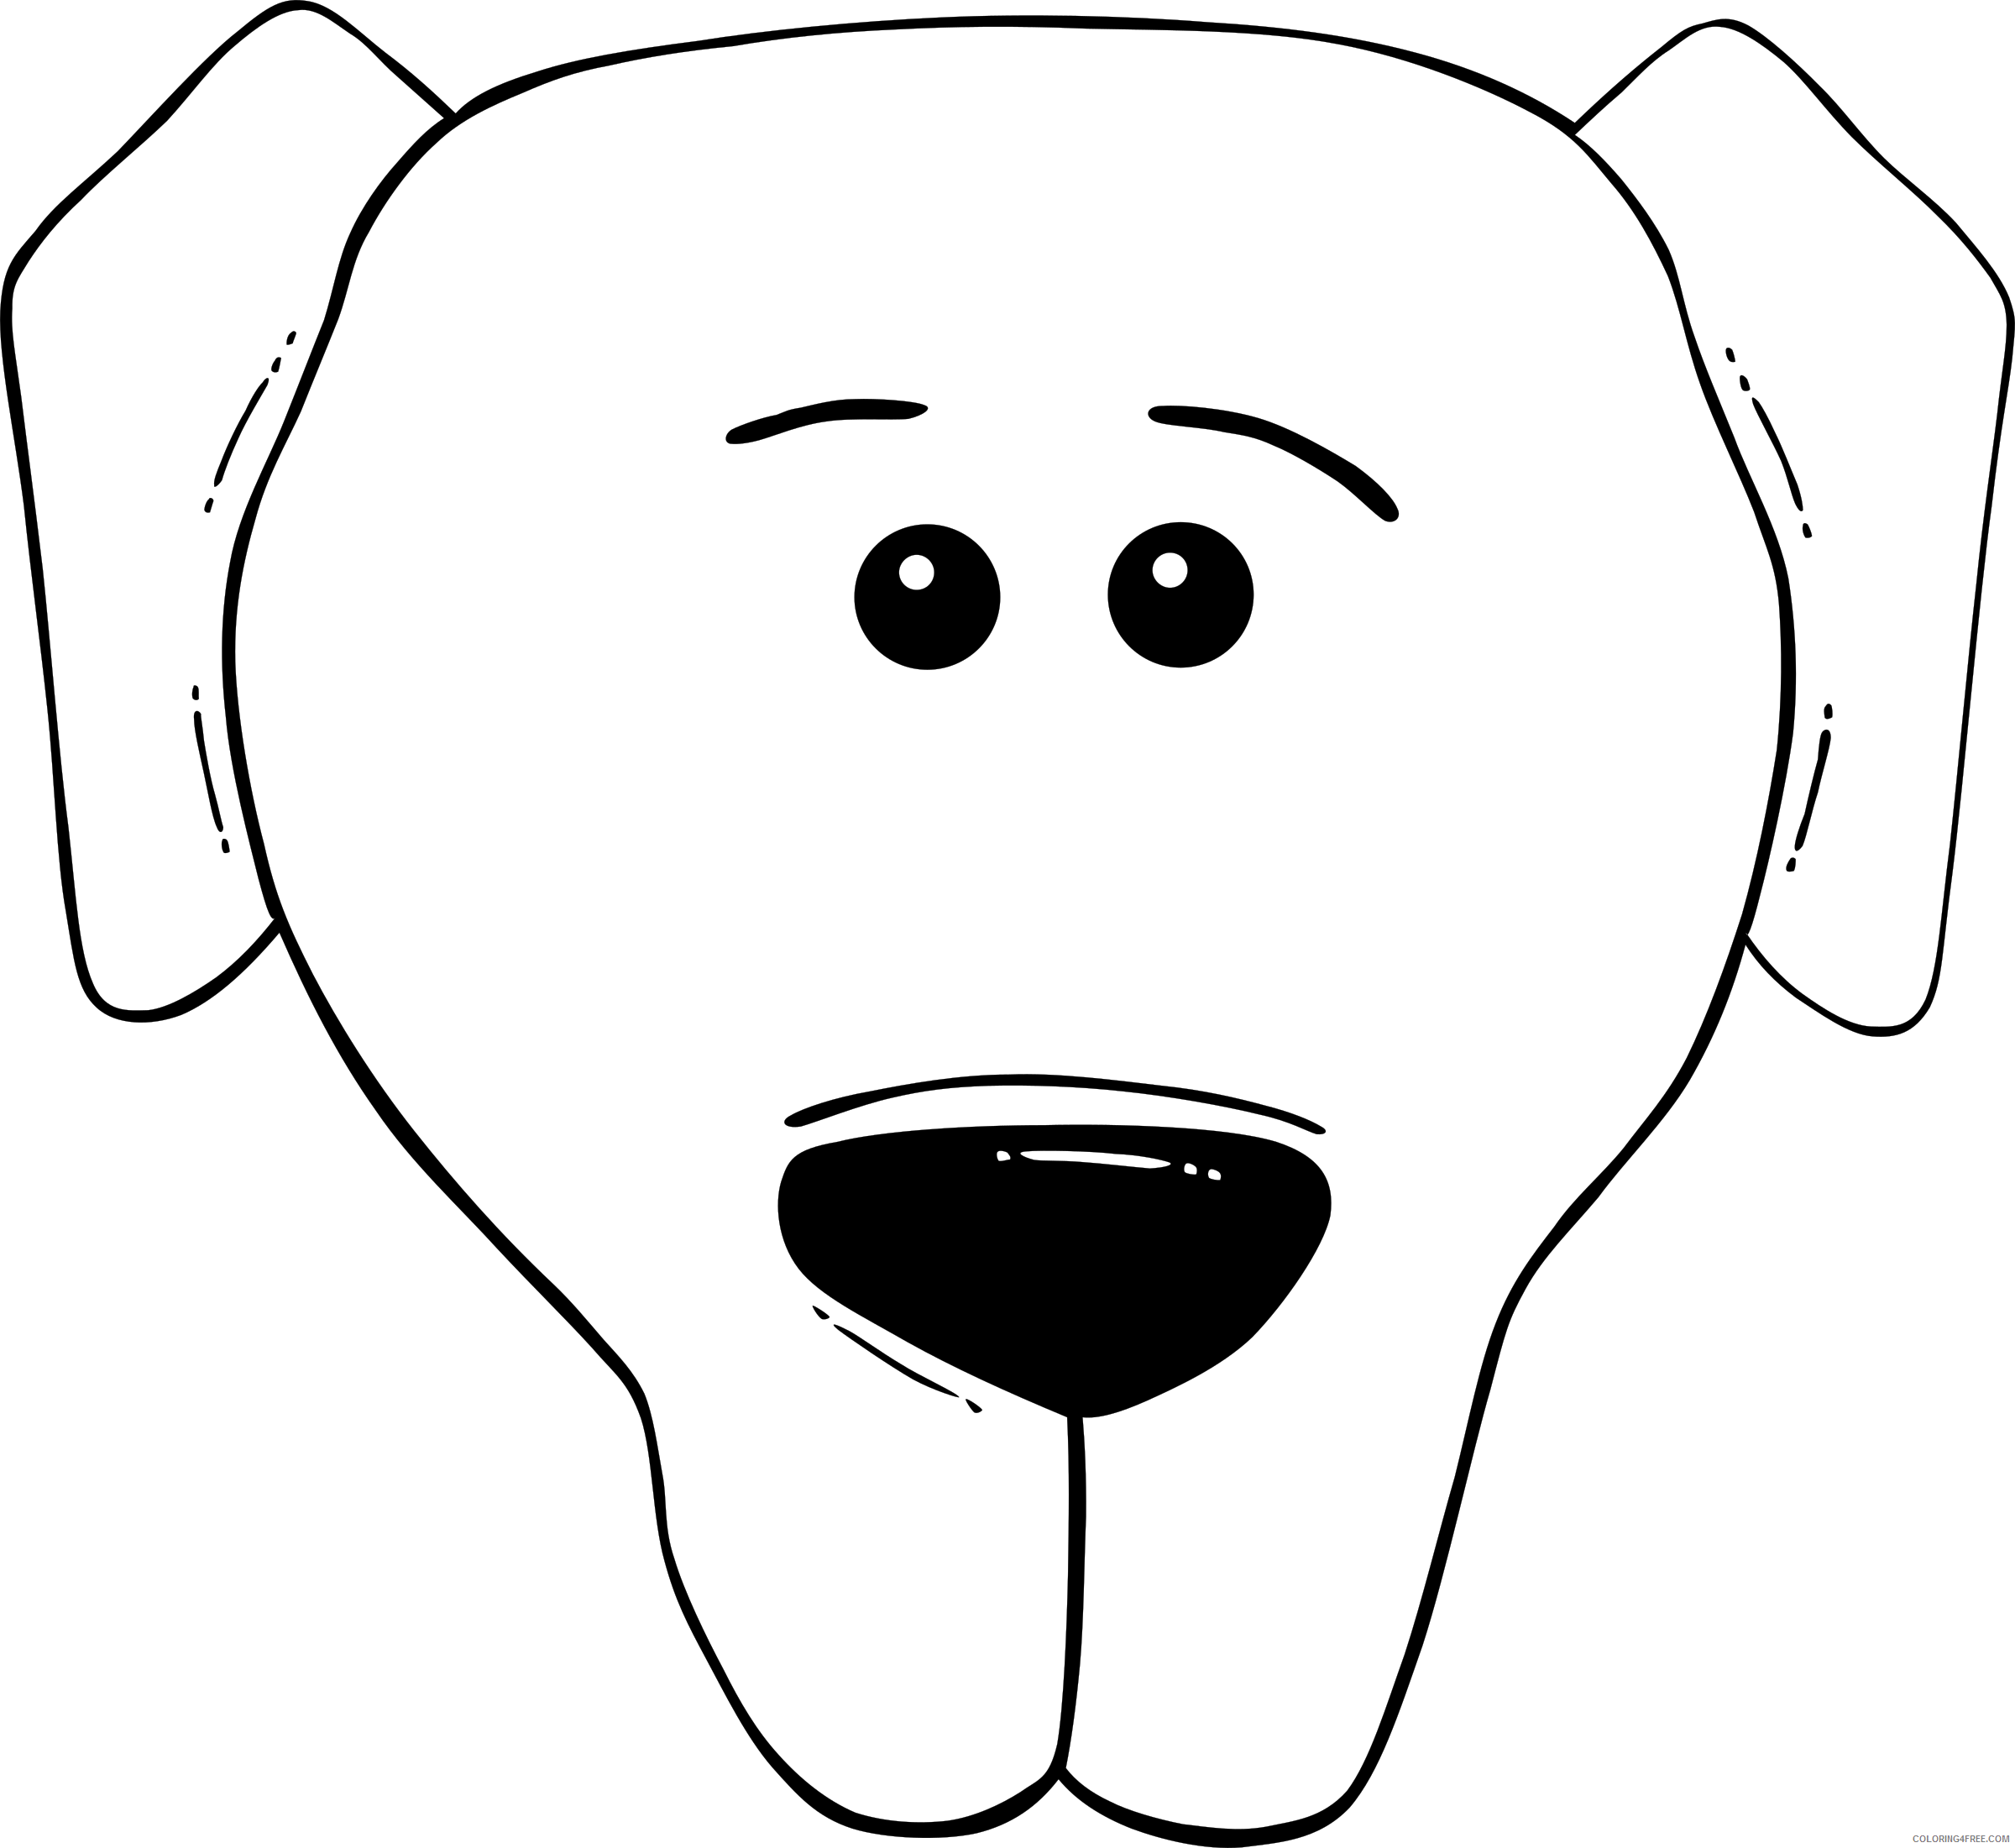 Dog Face Coloring Pages gerald g dog face cartoon Printable Coloring4free